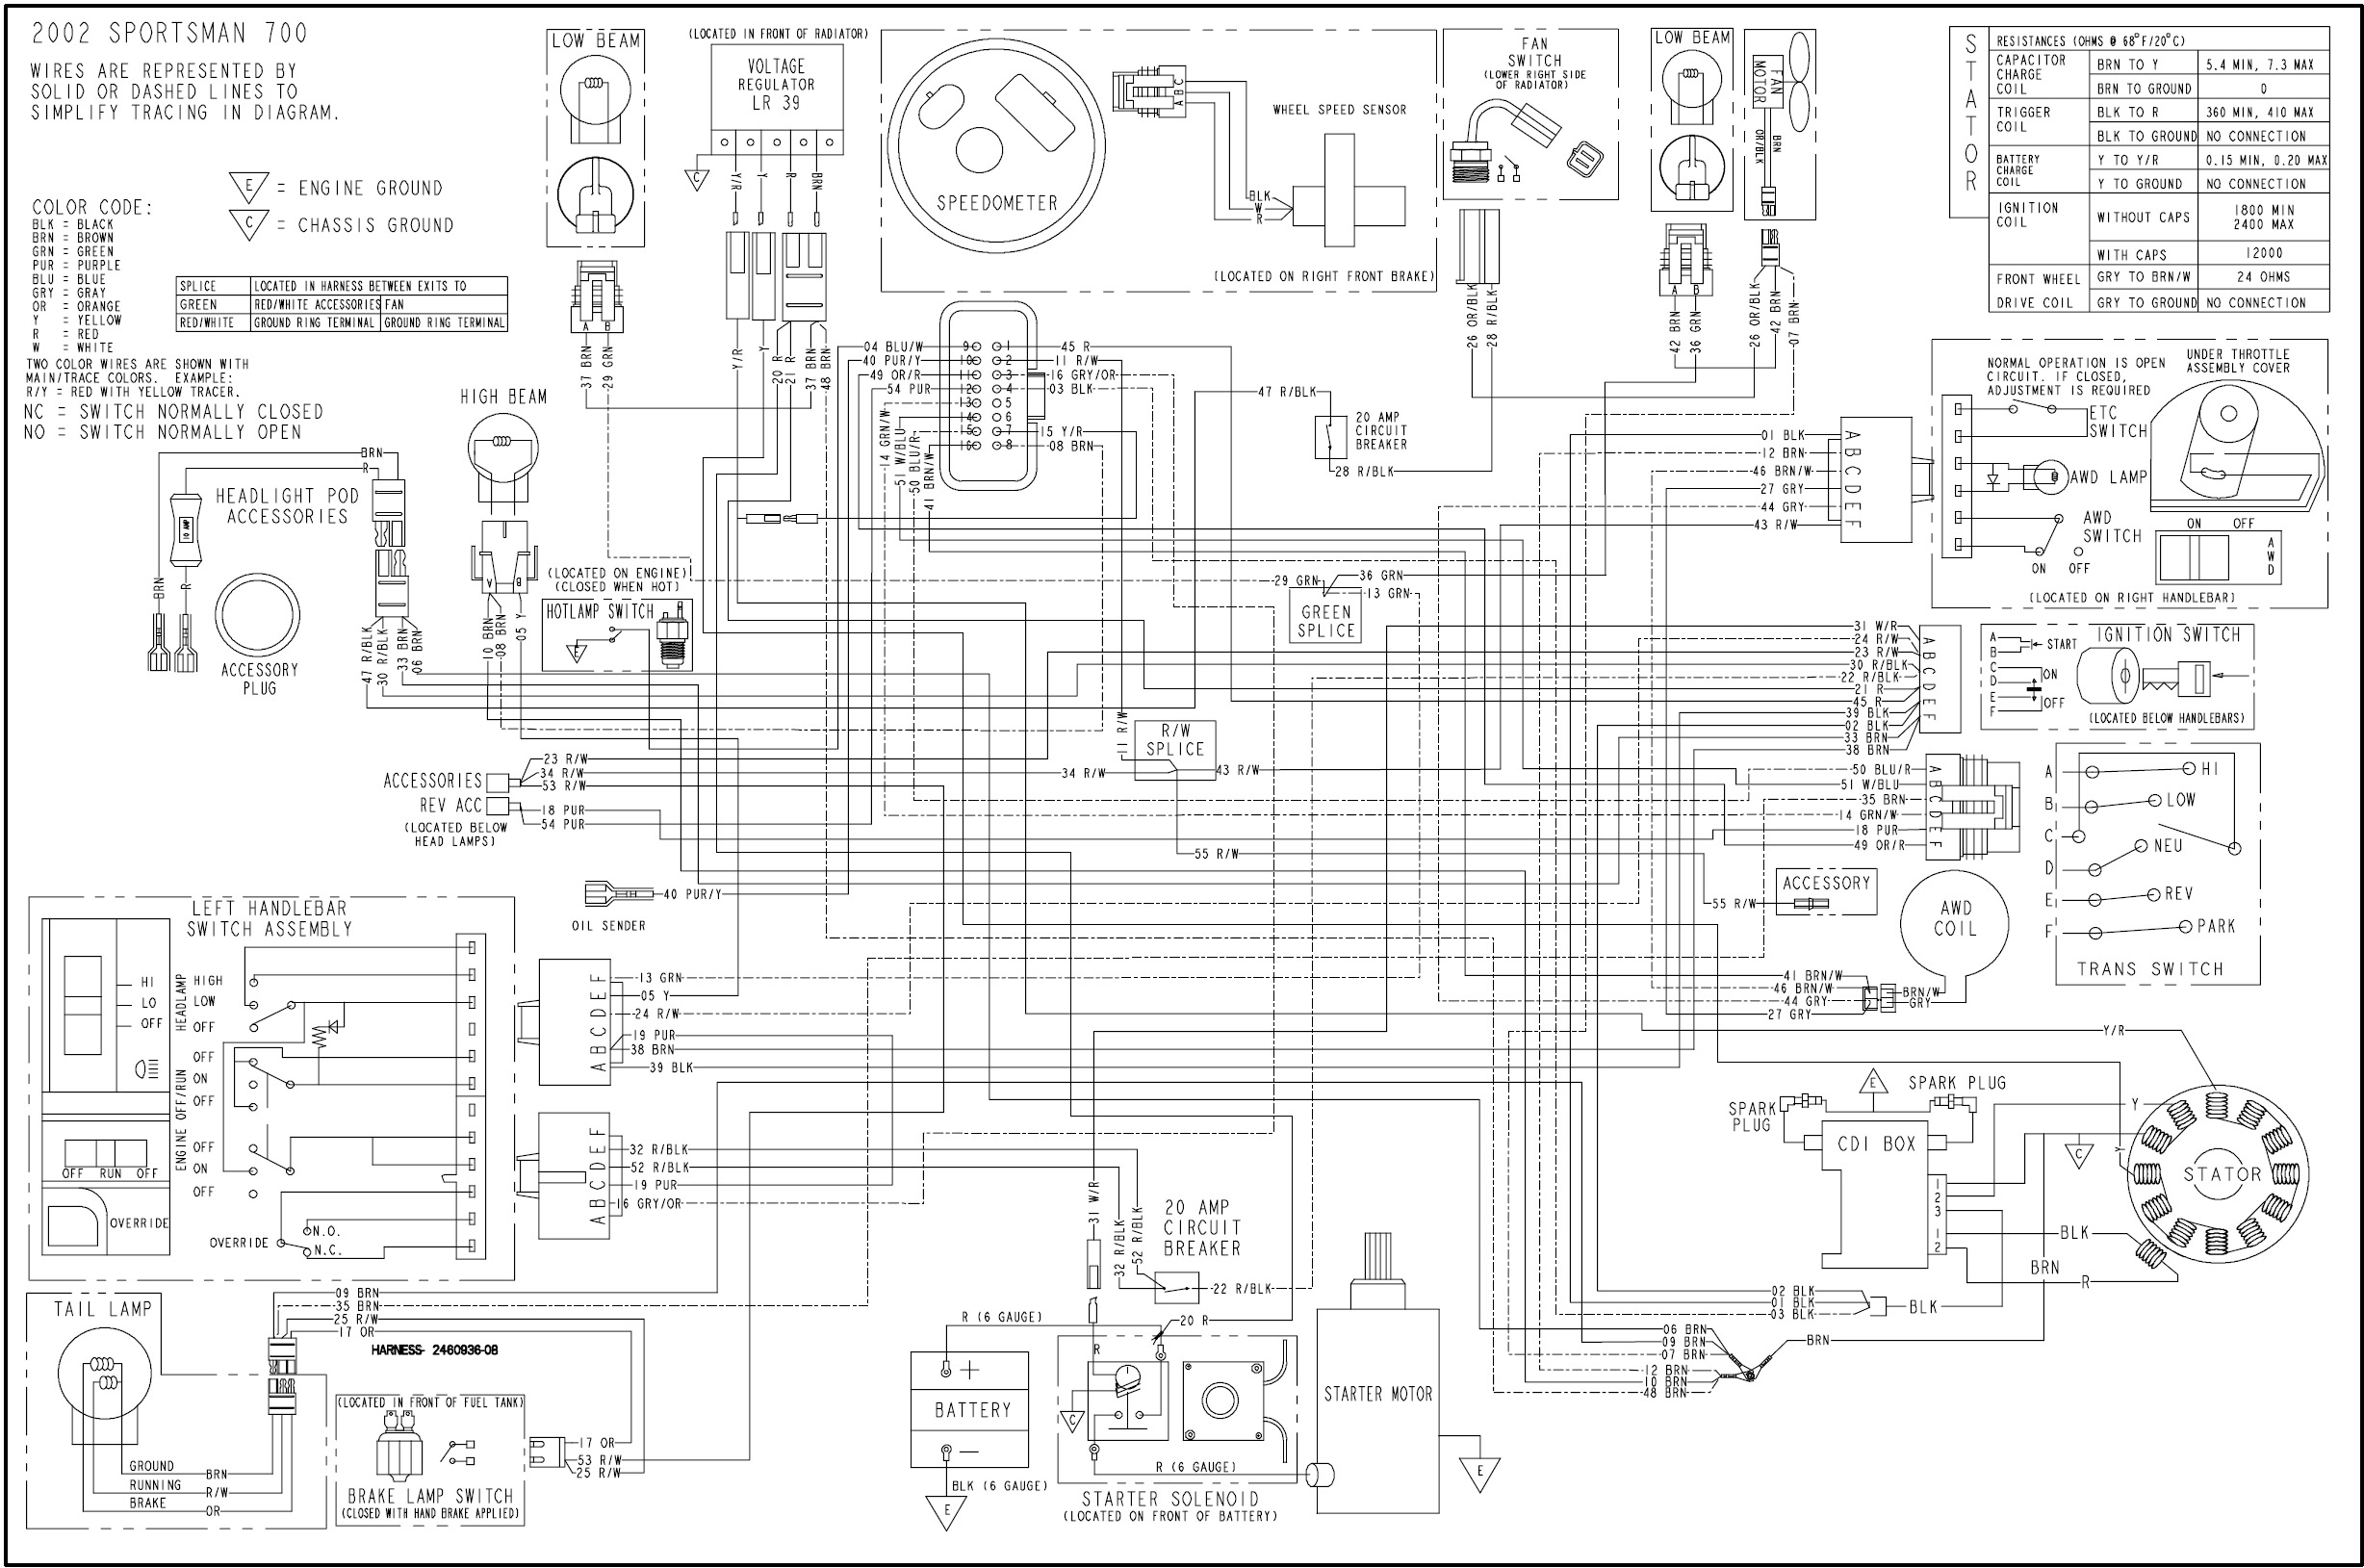 75754d1491234477 2001 sportsman 700 twin no start 2002_polaris_sportsman_700_wiring_diagram 2014 polaris outlaw 50 wiring diagram efcaviation com polaris 90 wiring diagram at soozxer.org